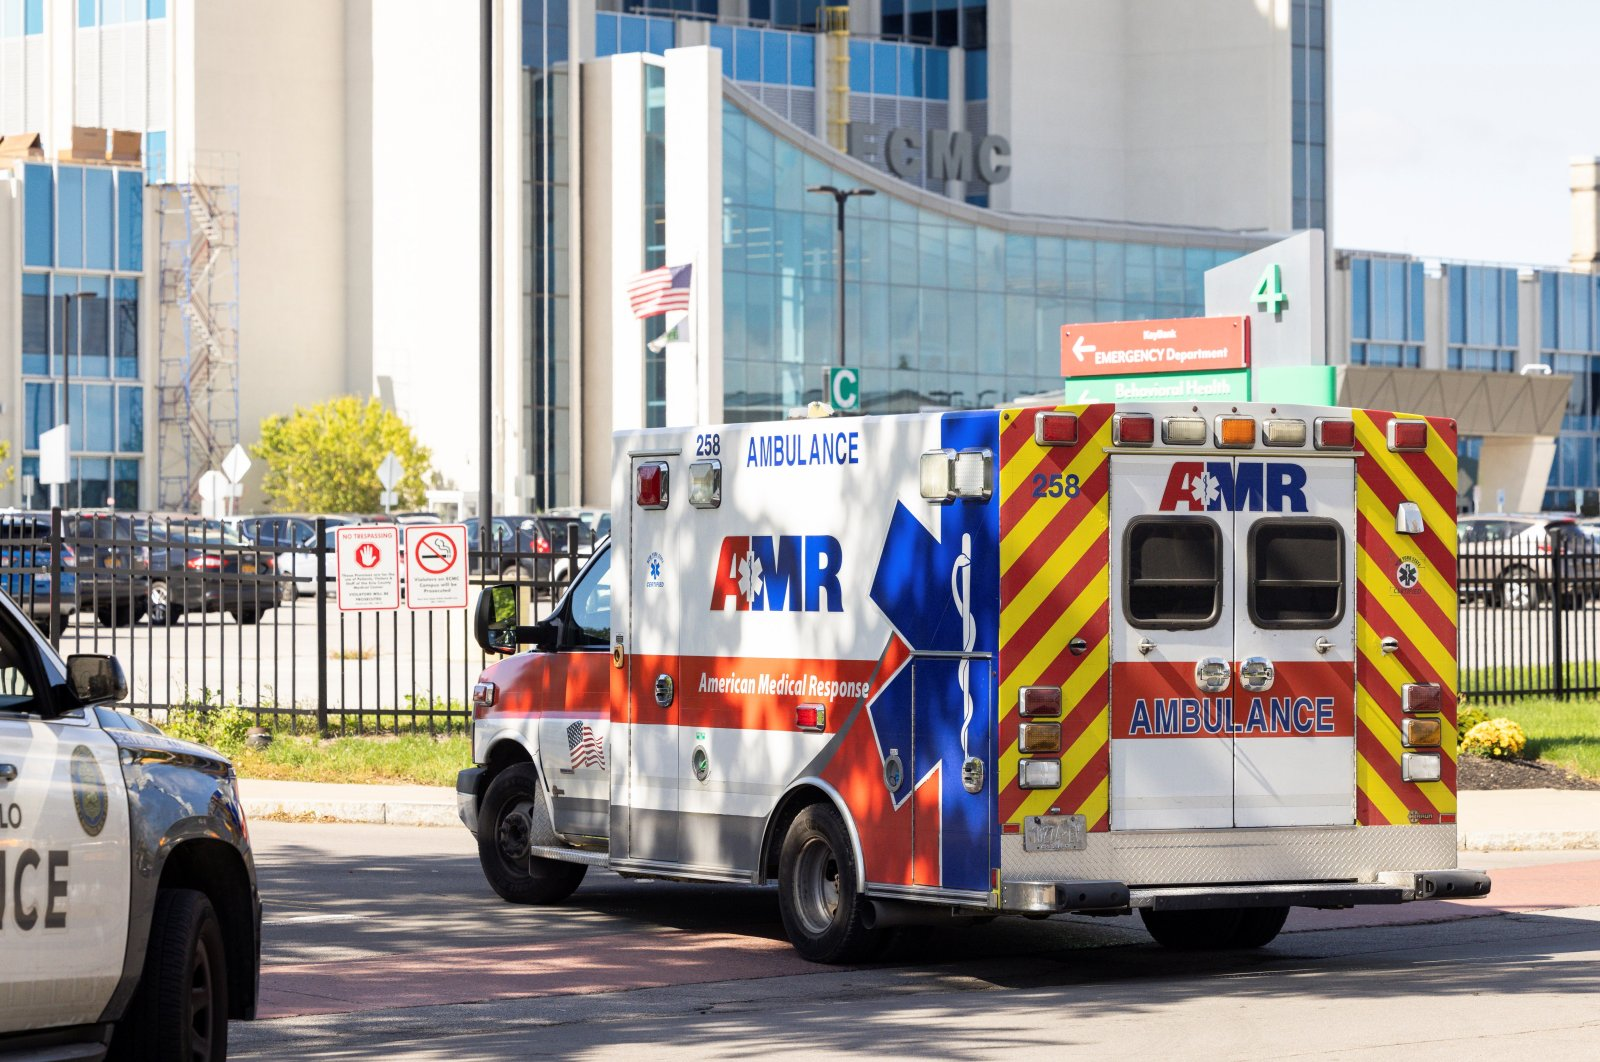 An ambulance is seen outside the Erie County Medical Center (ECMC) Hospital in Buffalo, New York, U.S., Sept. 28, 2021. (Reuters Photo)